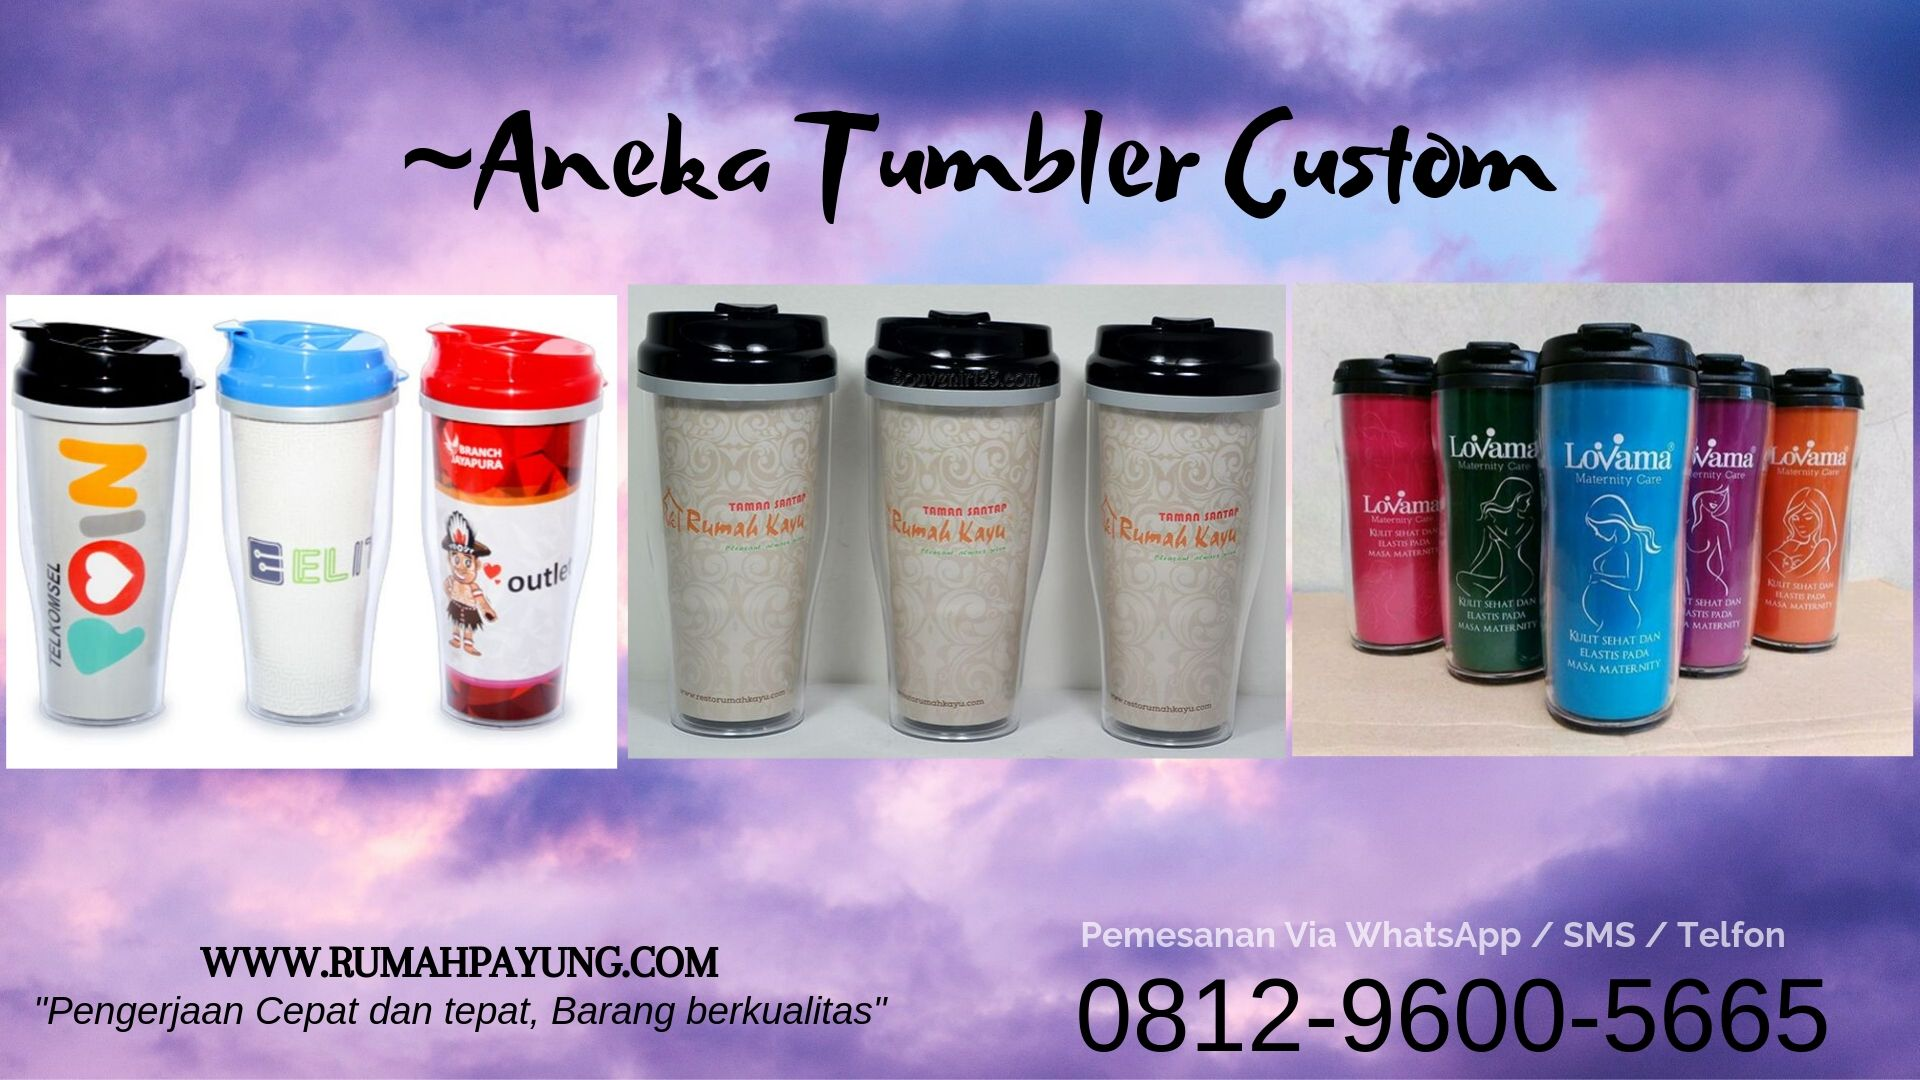 "JUAL GROSIR TUMBLER CUSTOM DESIGN LOGO HARGA TERMURAH DI MAGELANG<span class=""rating-result after_title mr-filter rating-result-12387"">			<span class=""no-rating-results-text"">No ratings yet.</span>		</span>"